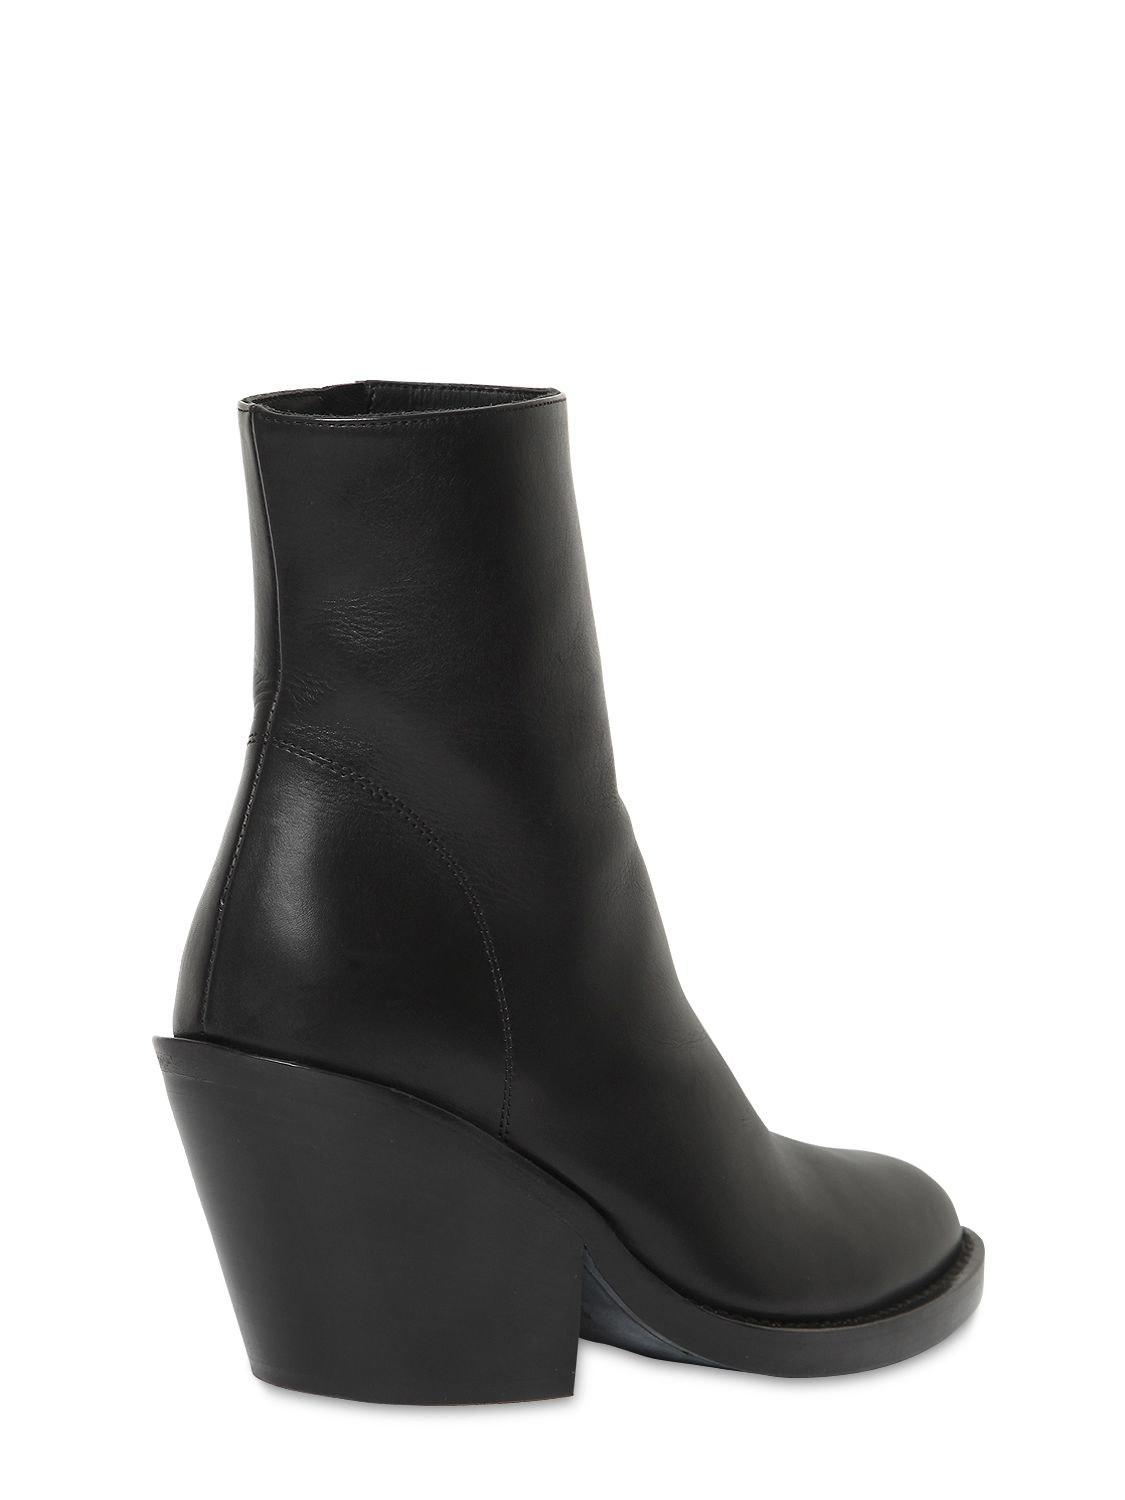 Ann Demeulemeester 80mm Leather Ankle Boots in Black